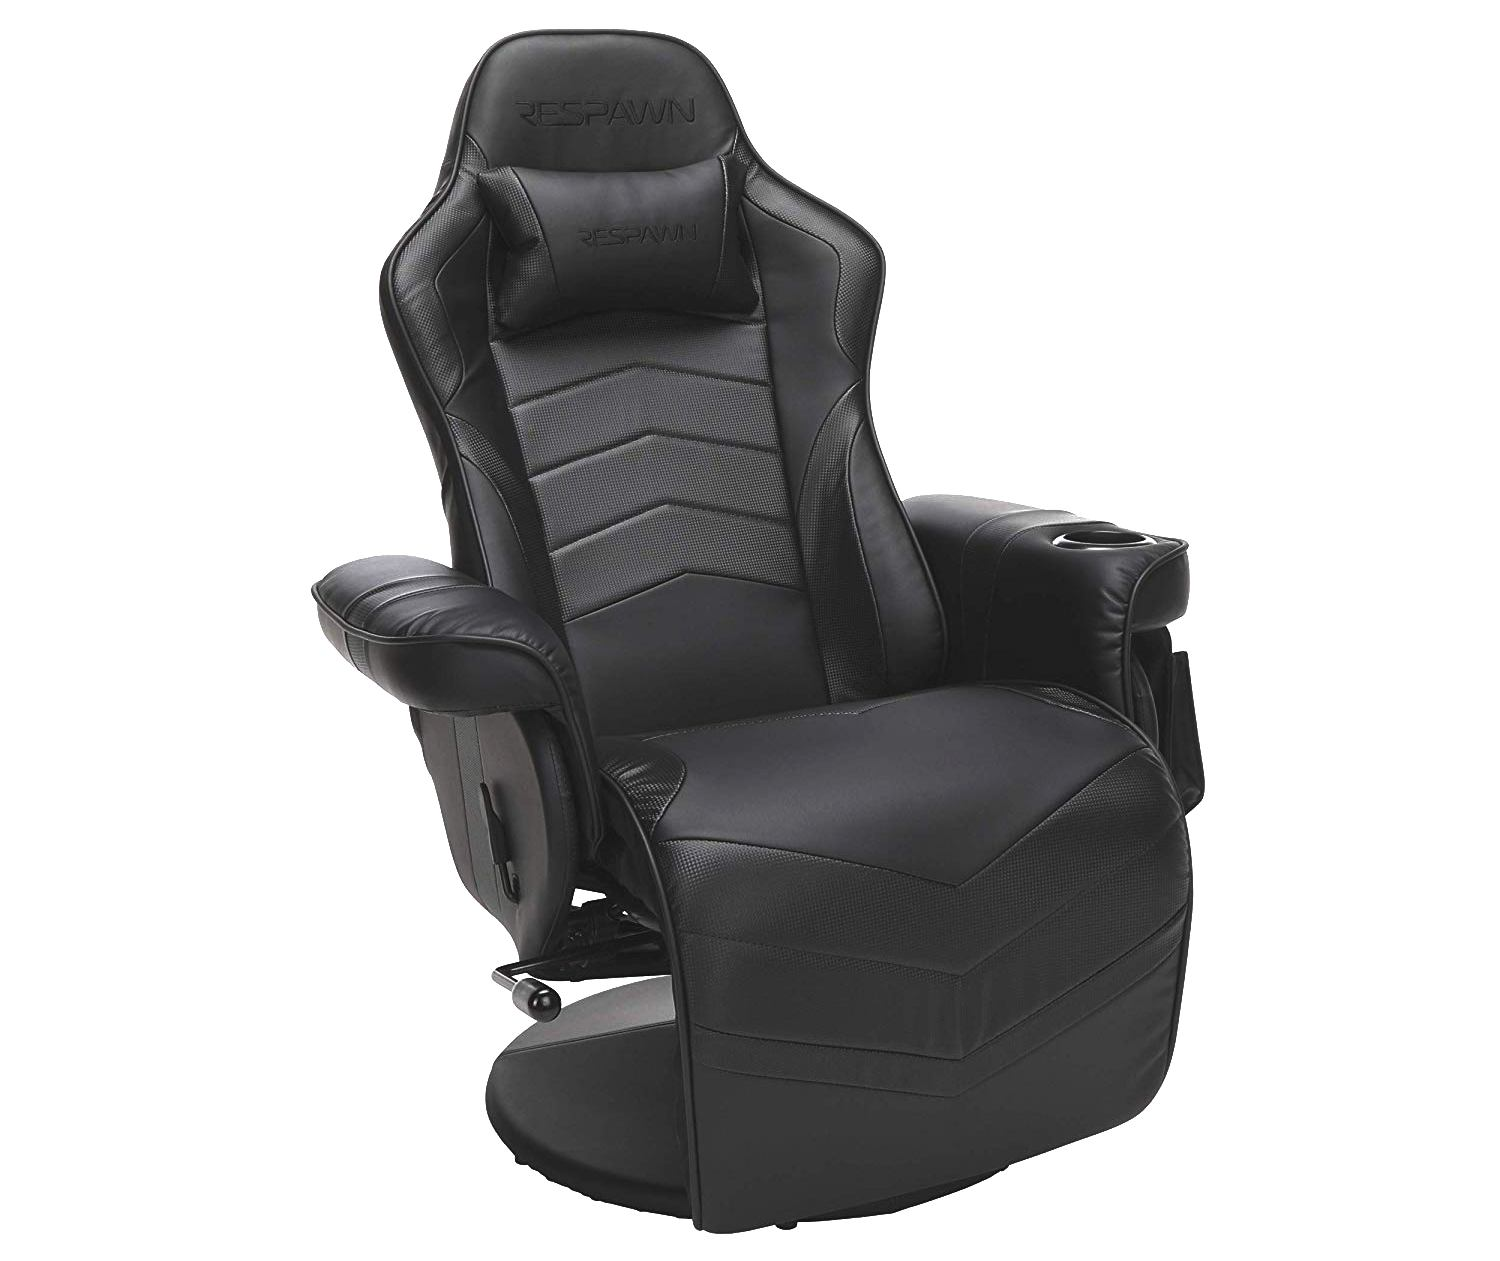 Respawn 900 Recliner